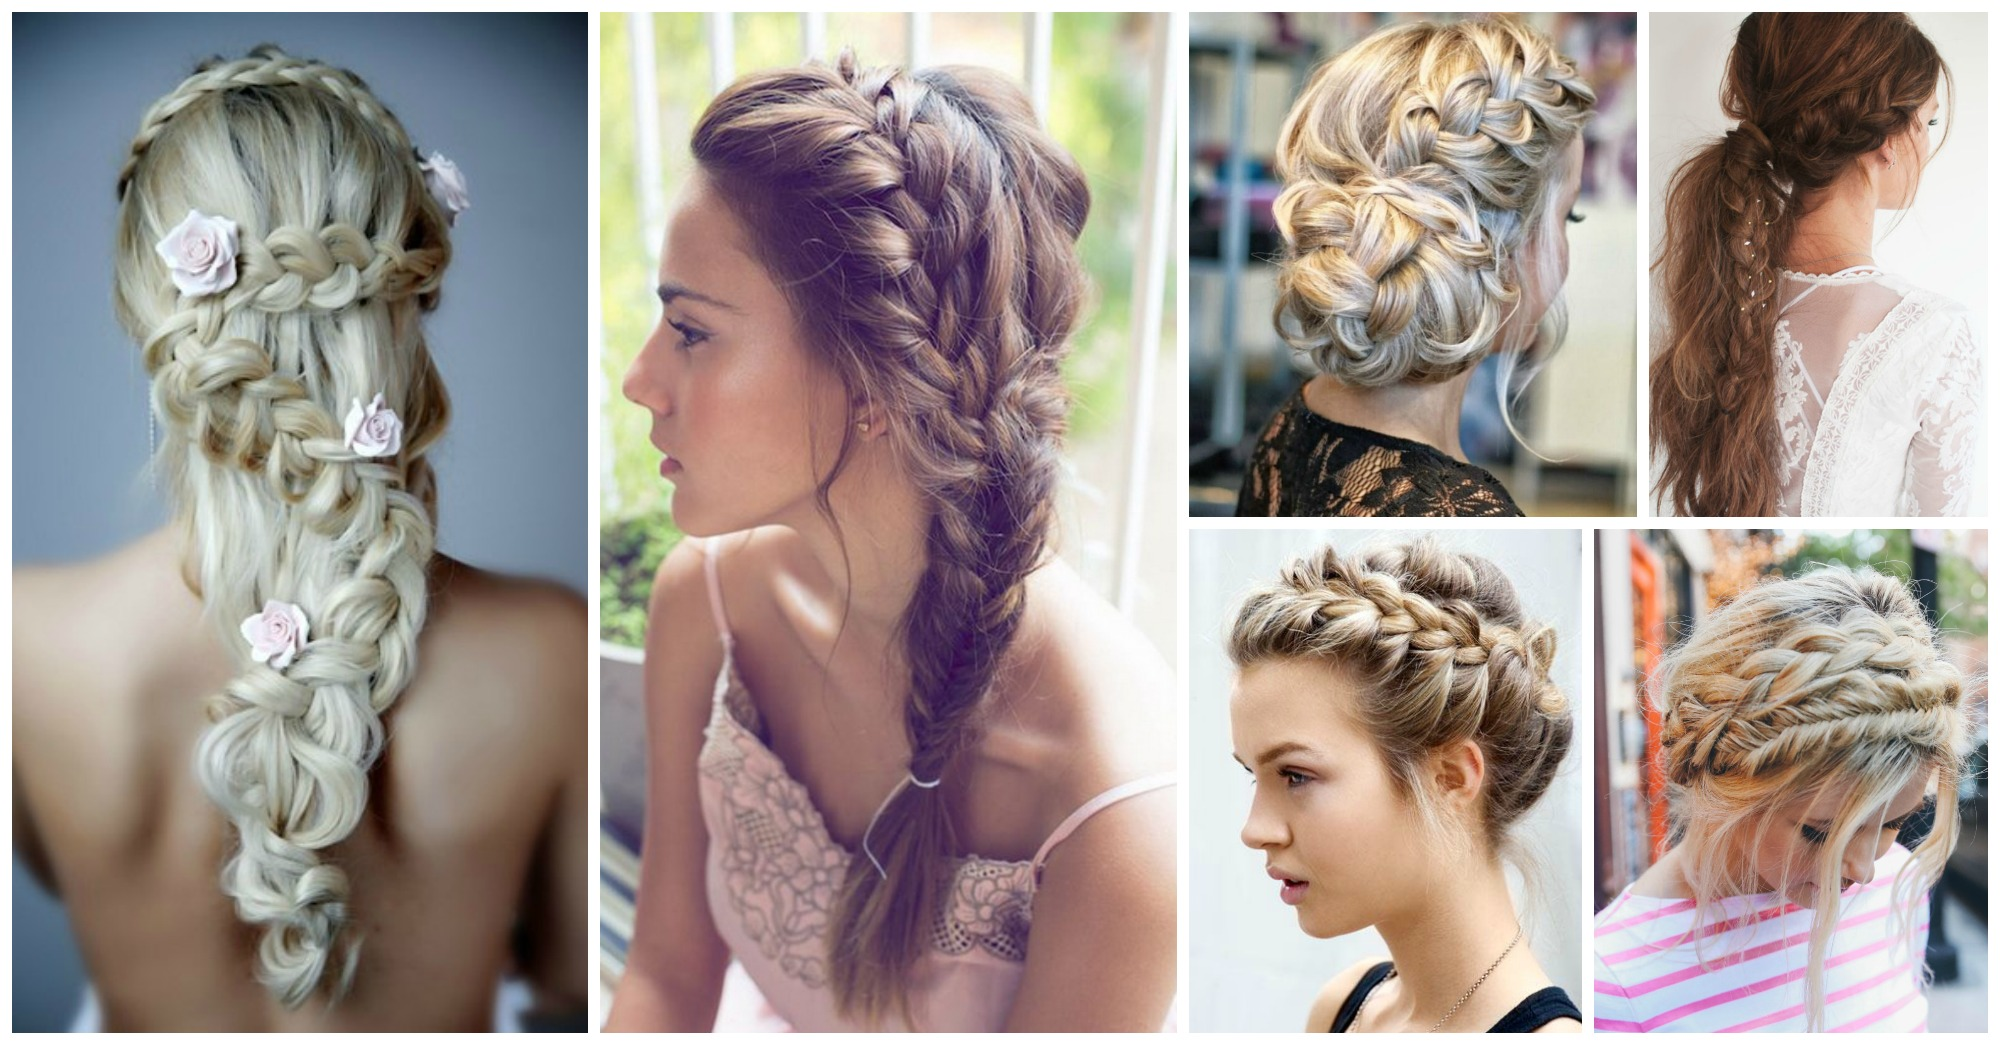 10 Carefree Beach Hairstyles You Should Try Right Now